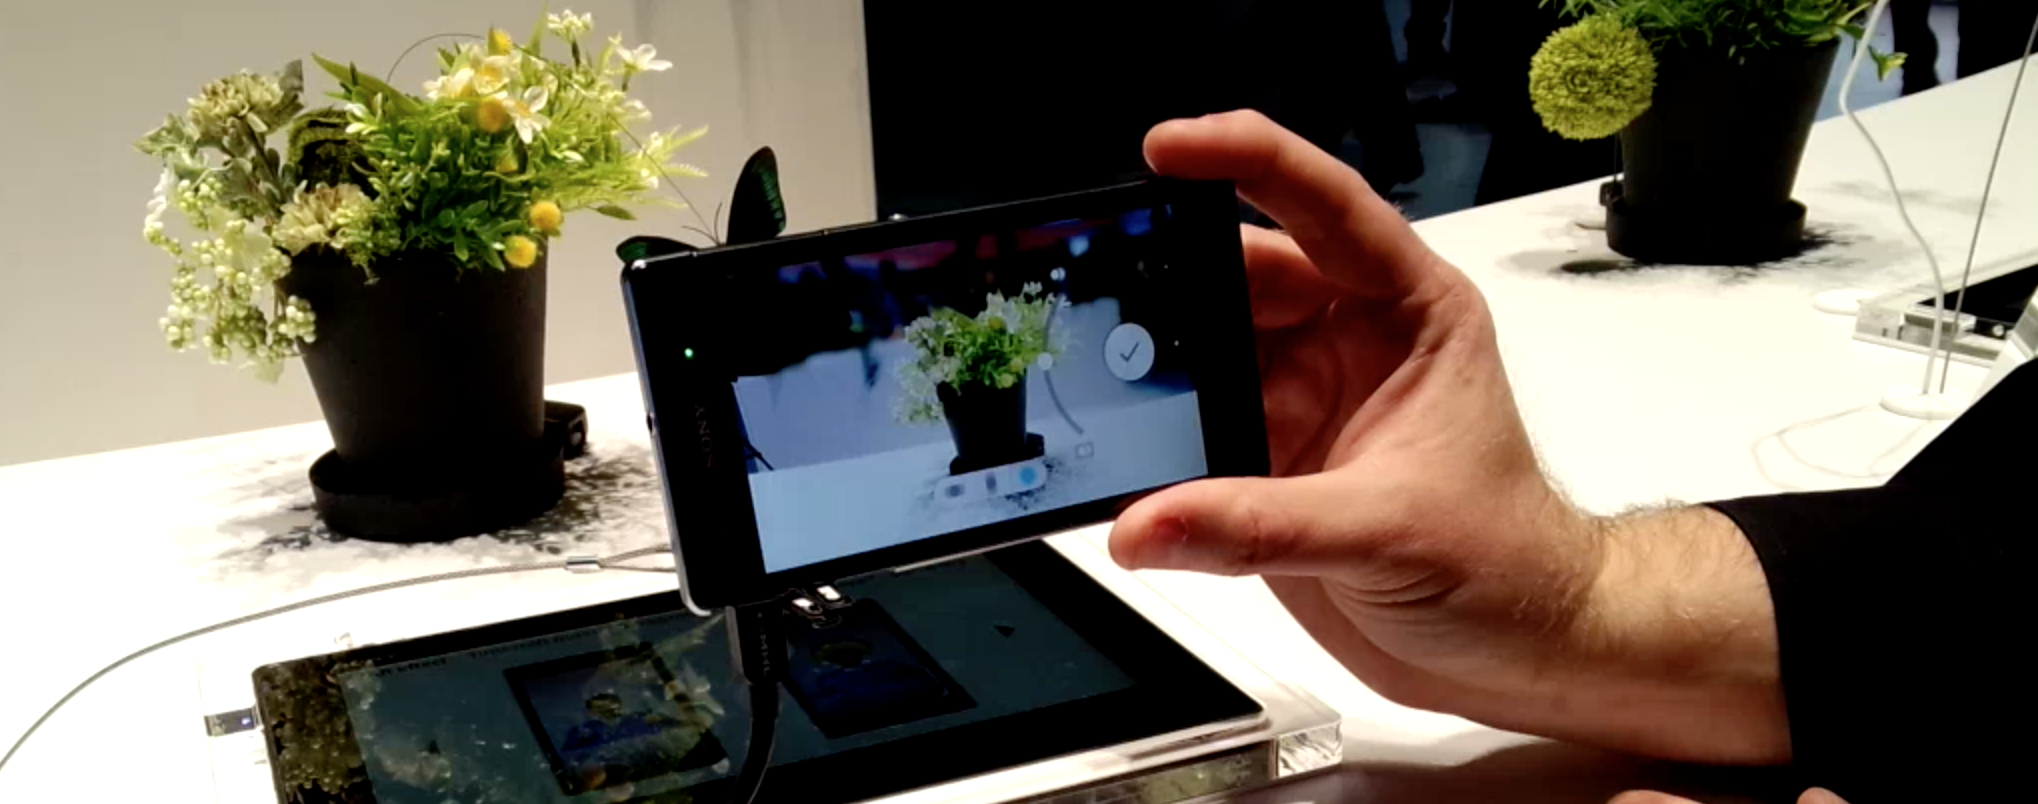 Sony's new Background Defocus feature on the Xperia Z1S is gorgeous, when it works